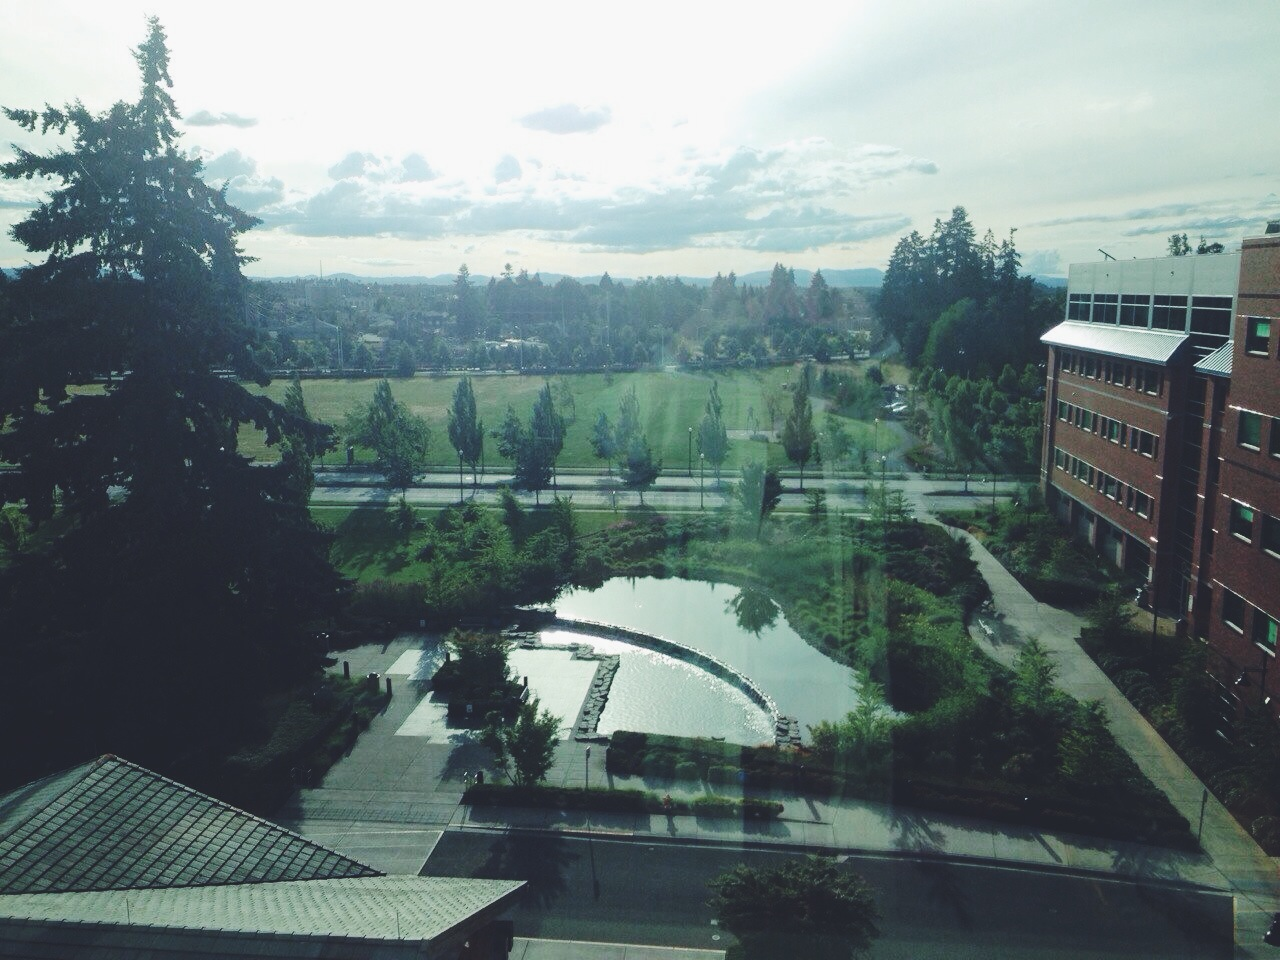 The gorgeous view from our hospital room.